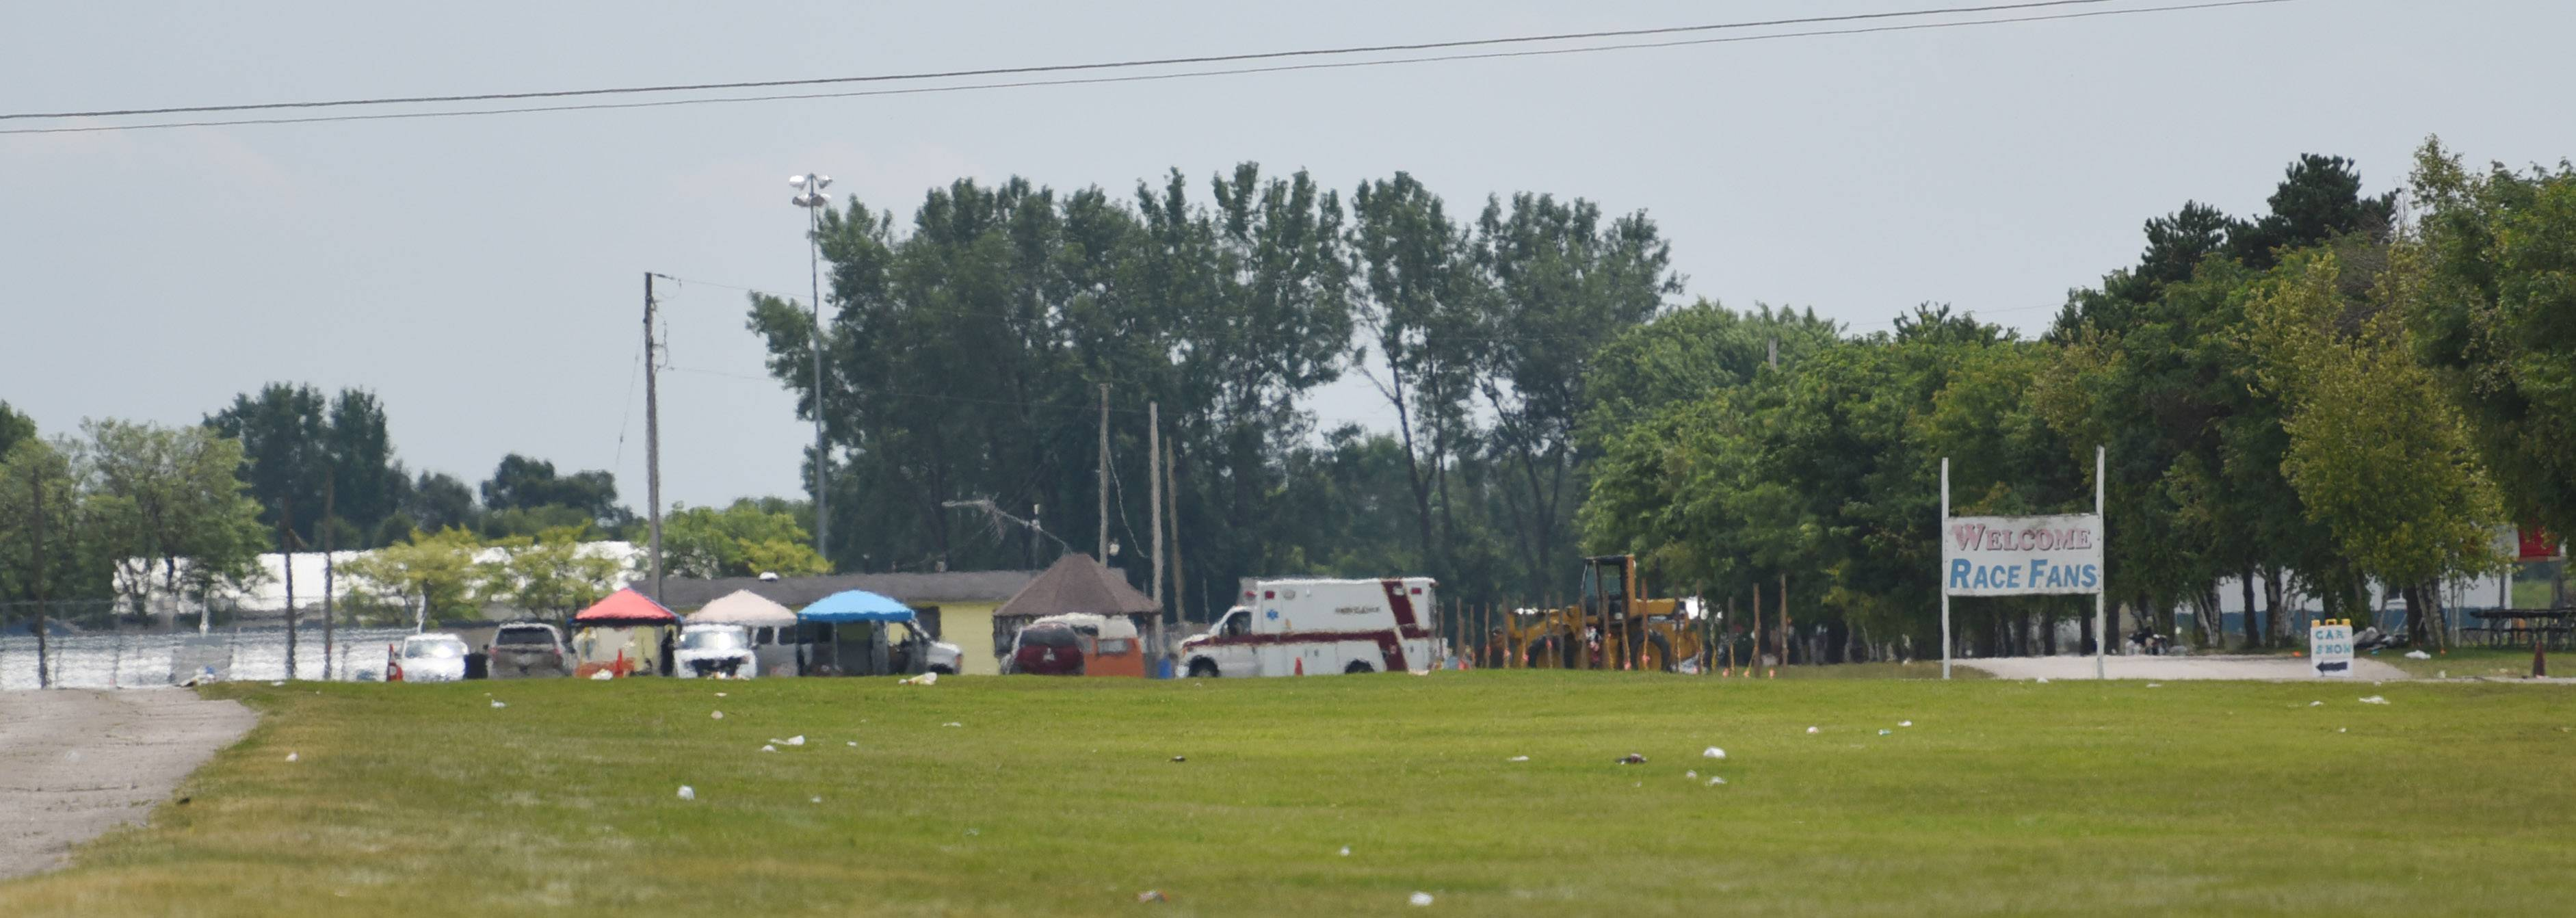 Police officials continue their investigation Monday on the triple shooting Sunday night at Great Lakes Dragaway in Kenosha County, Wisconsin.